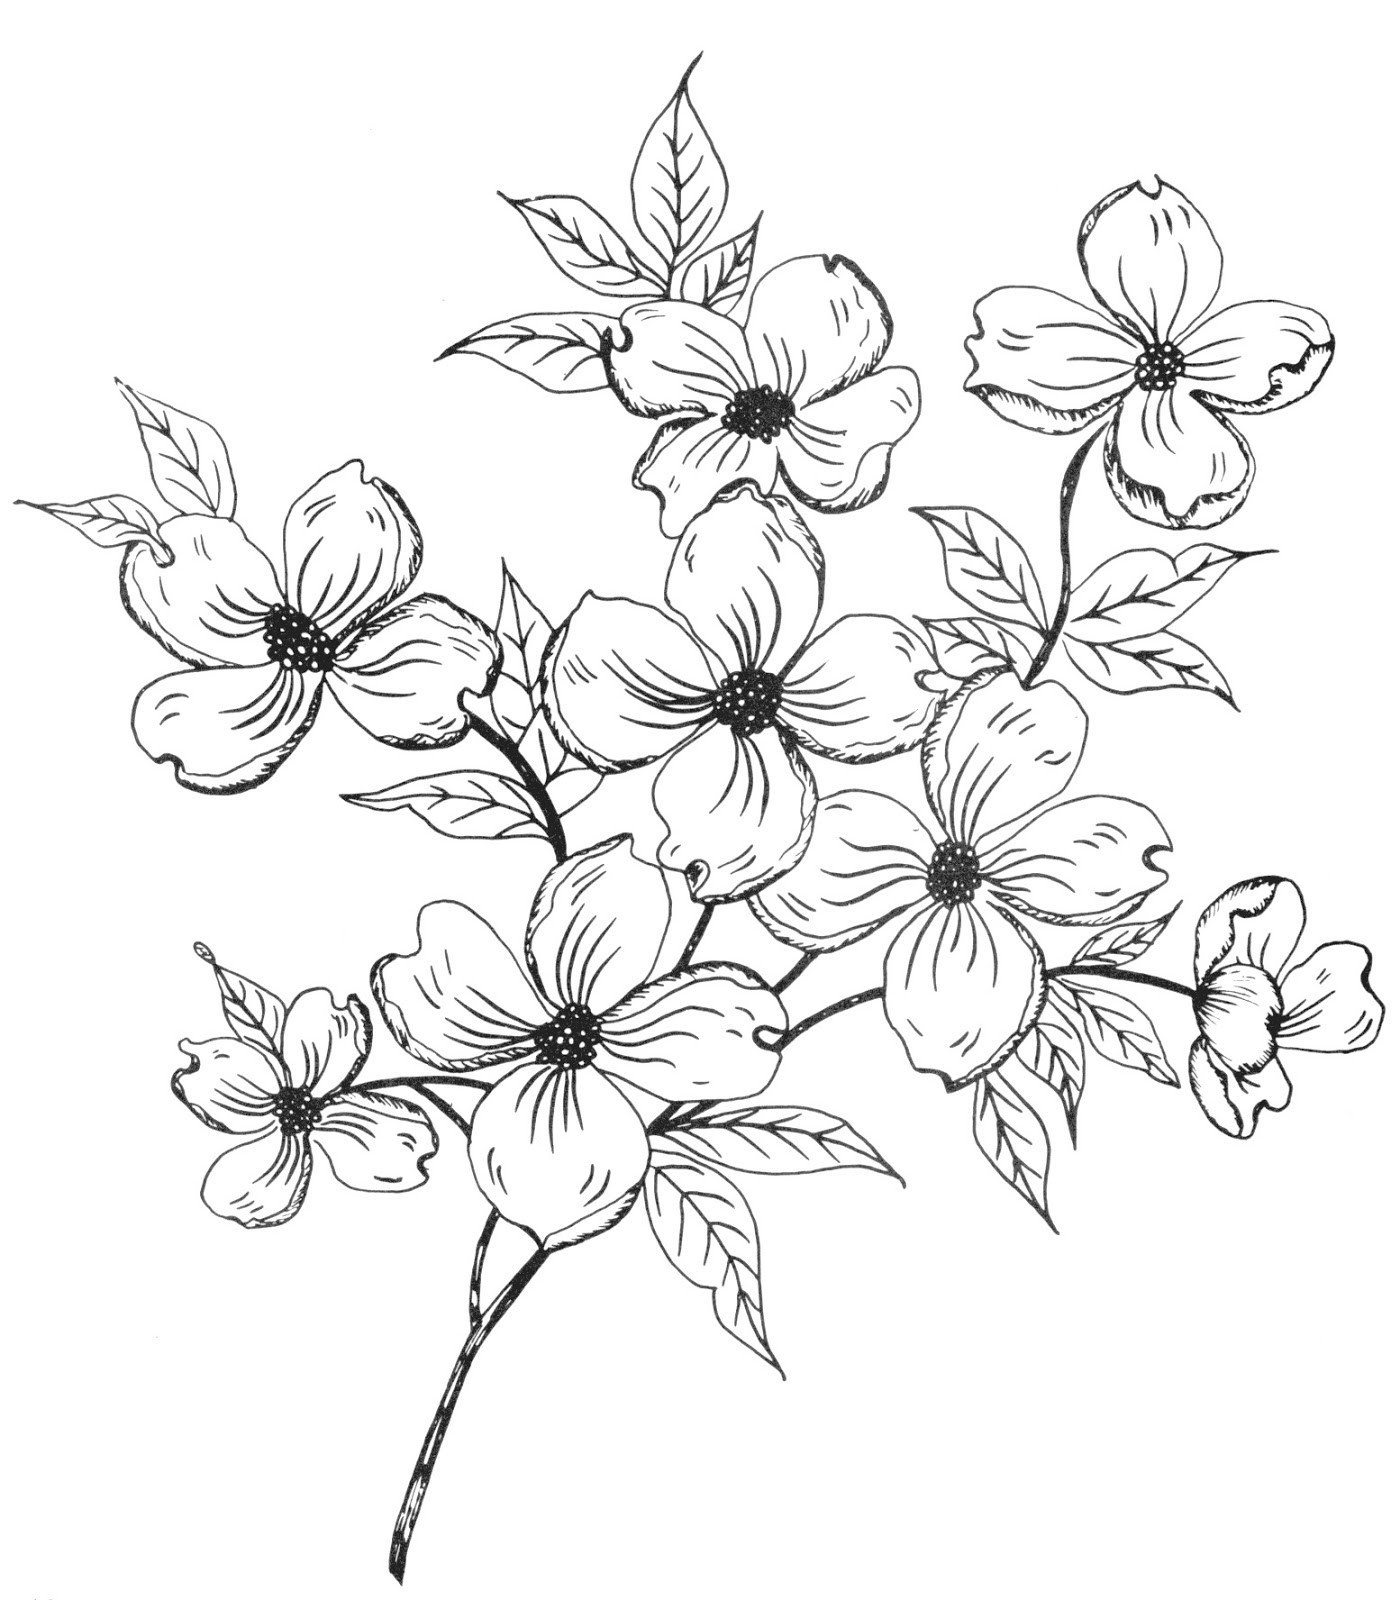 Dogwood Flower Outline White Flower Clipart Dogwood Pencil and In Color White